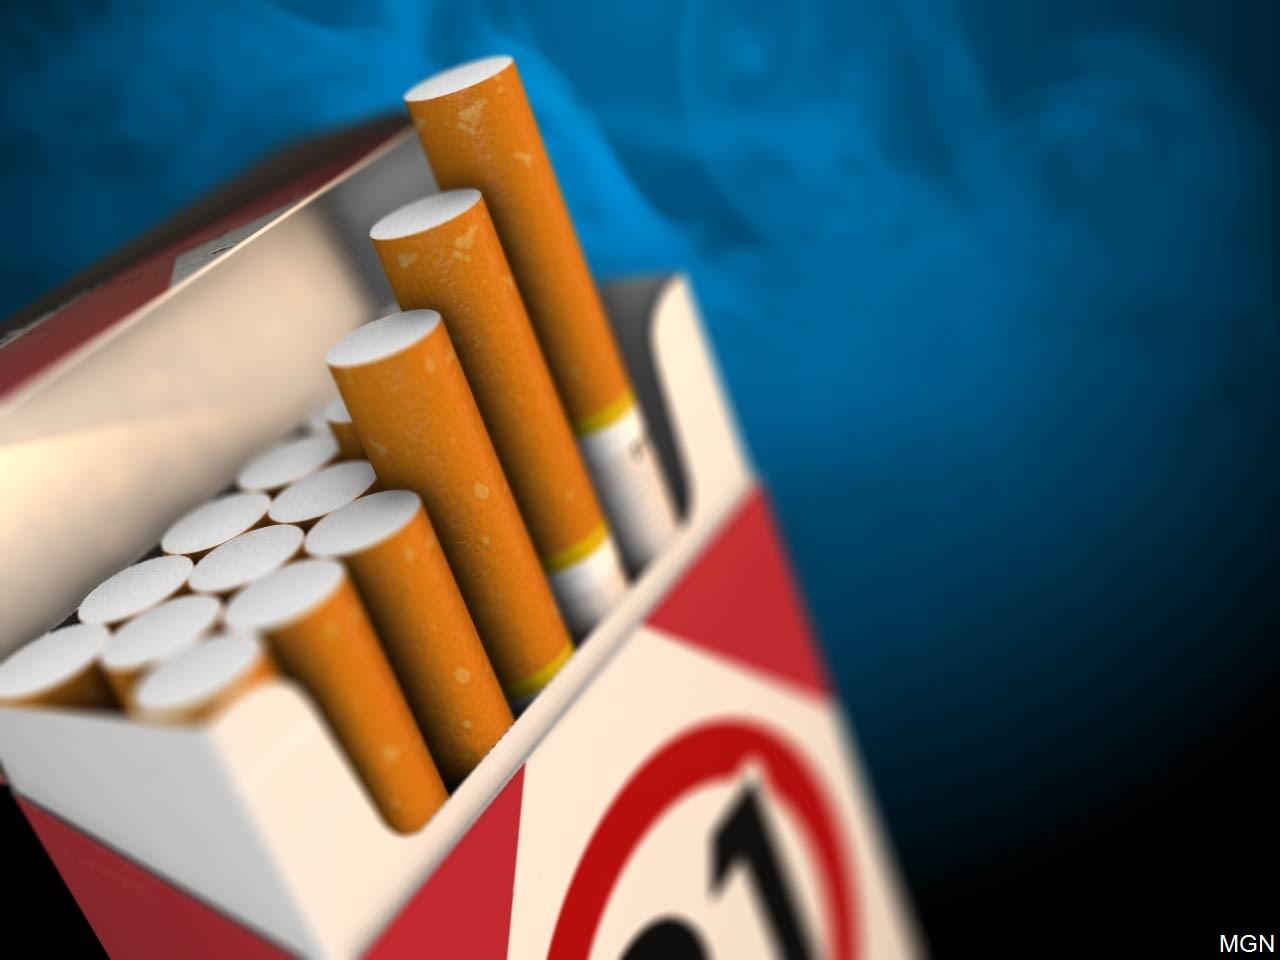 Walmart, Sam's Club raises tobacco purchase age to 21